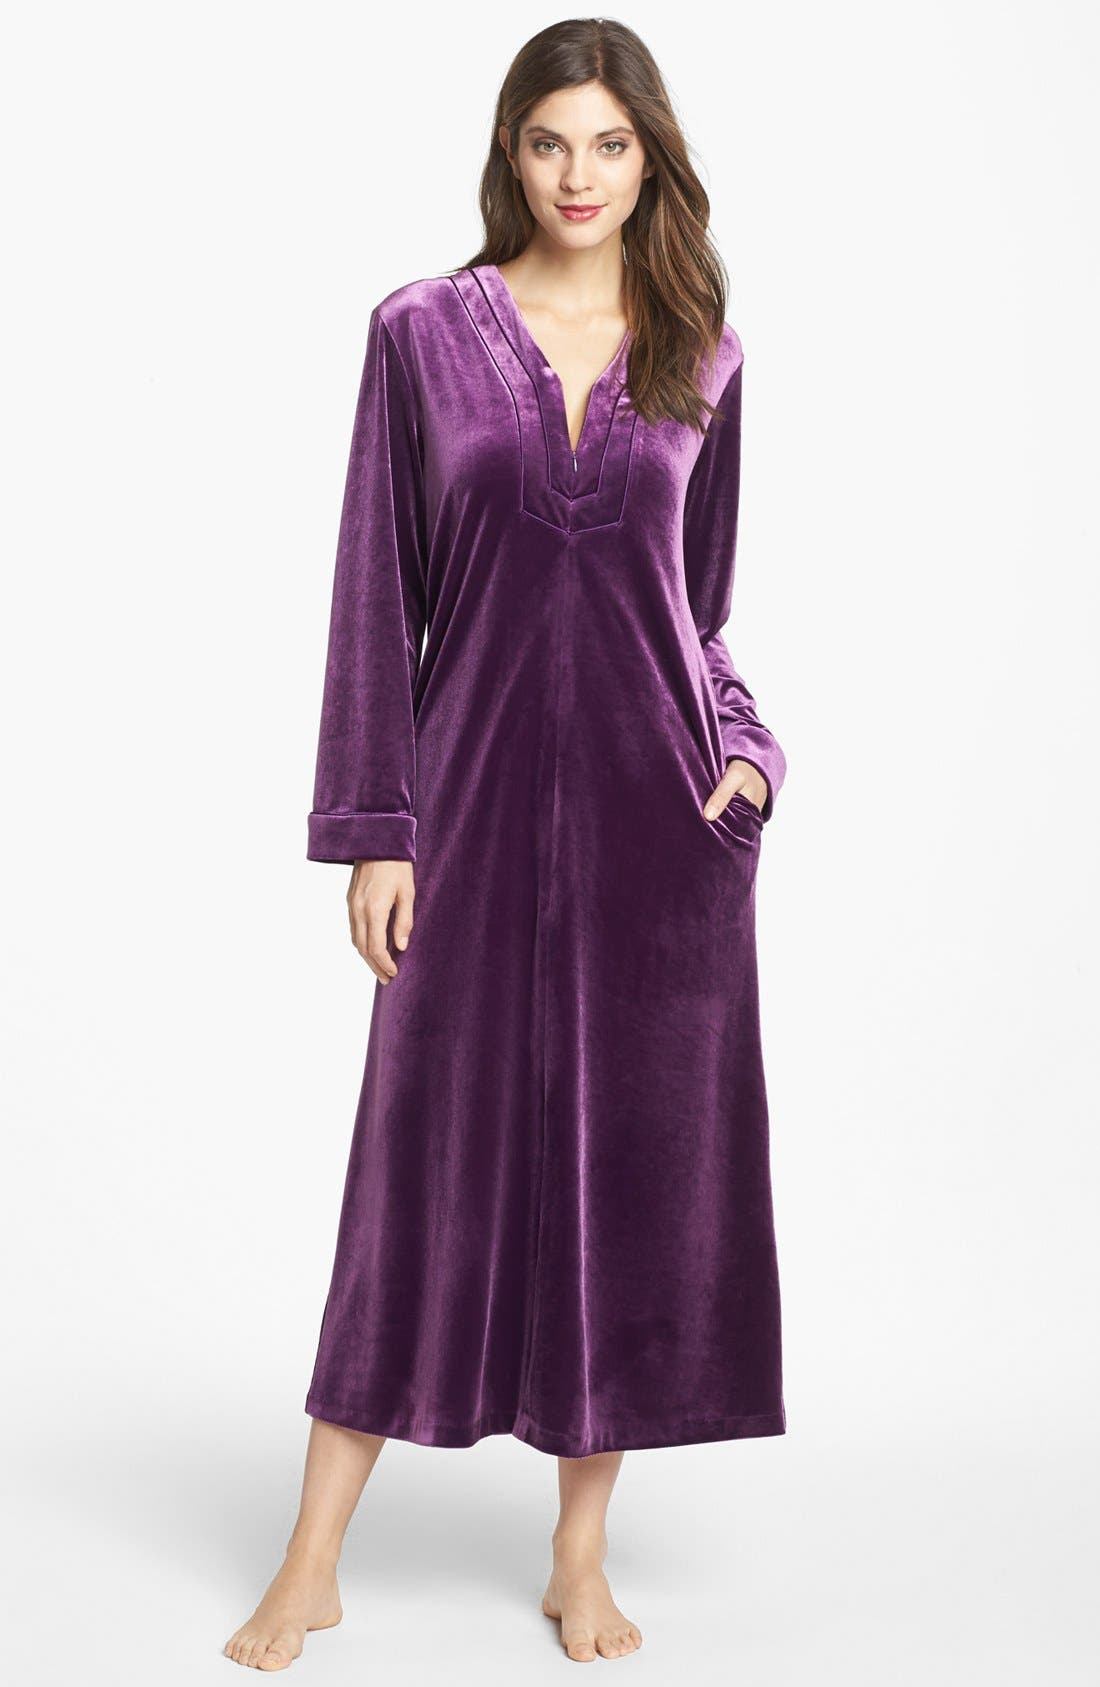 Alternate Image 1 Selected - Oscar de la Renta Sleepwear 'Zahara Nights' Zip Front Velvet Robe